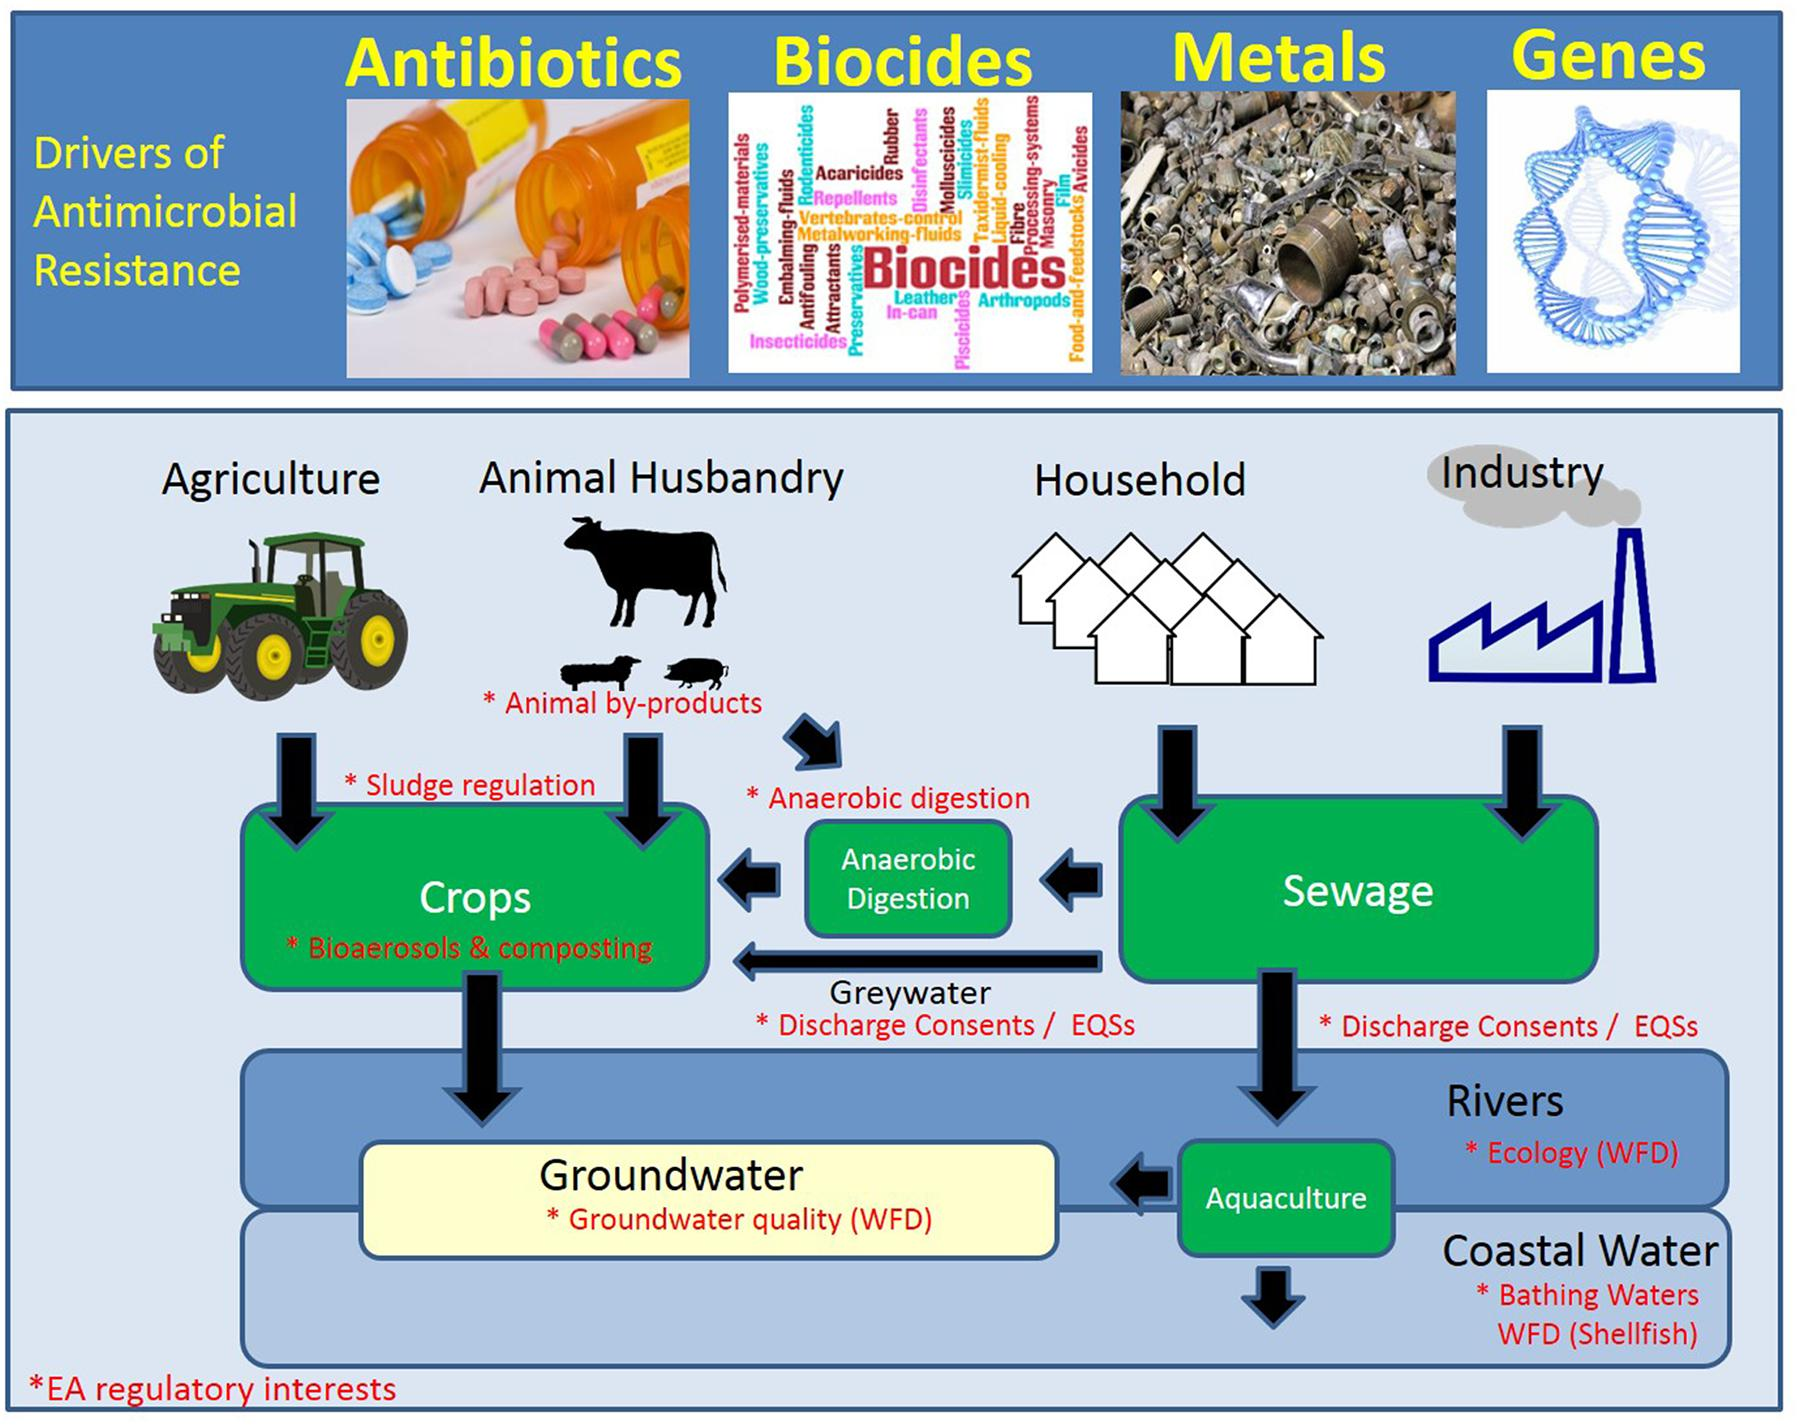 Exposure To Antimicrobials During >> Frontiers Review Of Antimicrobial Resistance In The